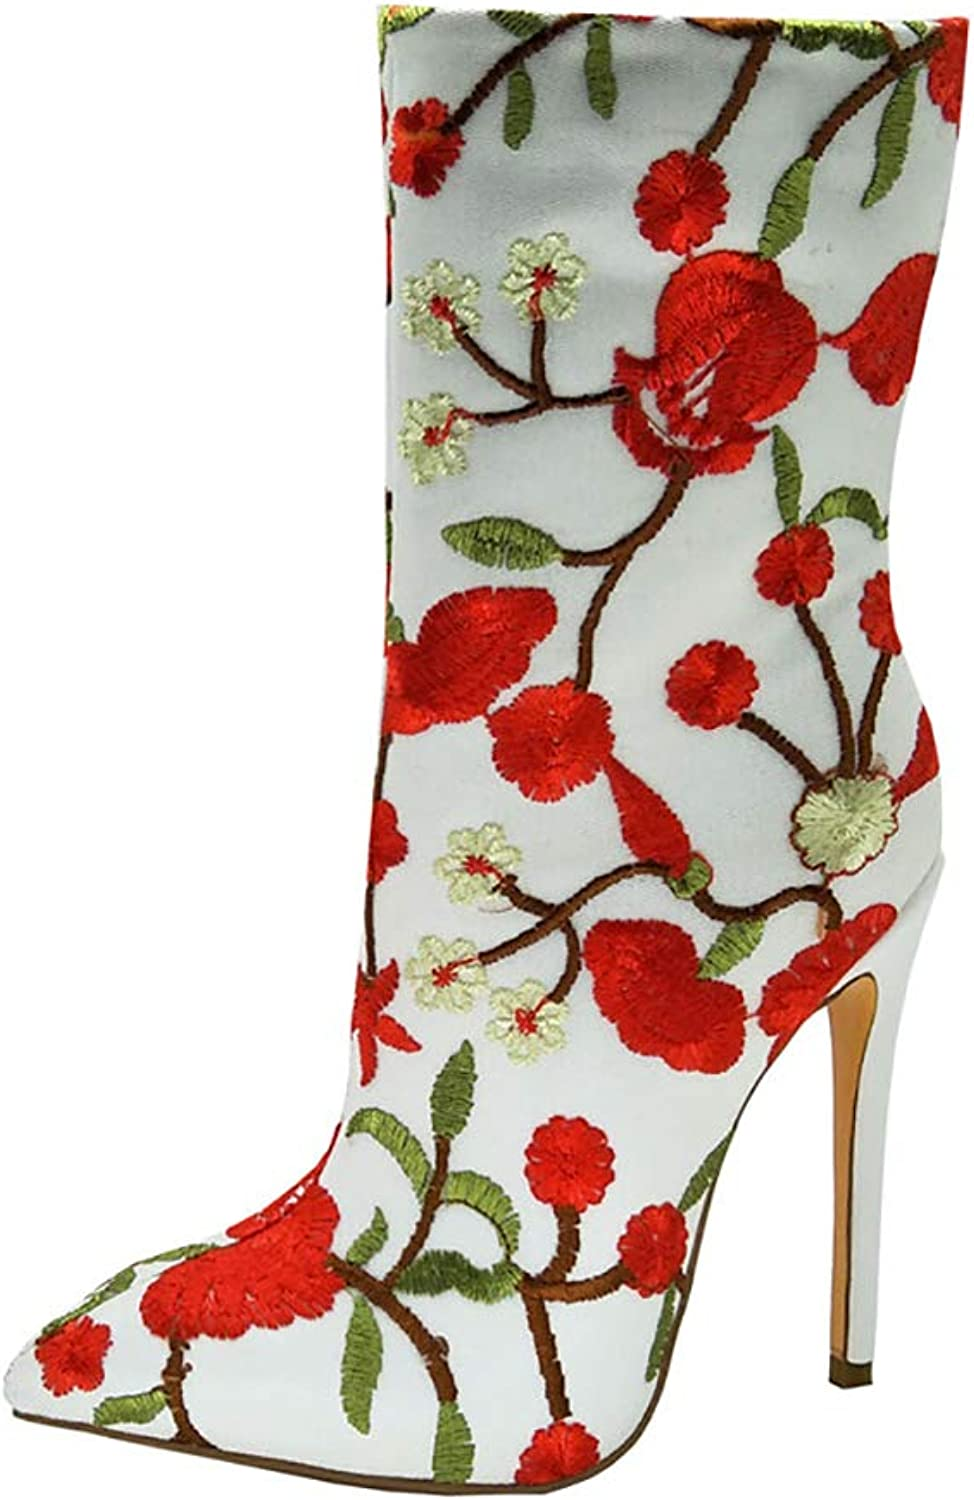 Original Intention Women's Ankle Boots Floral Embroidered Heels Boots White shoes Women Big Size